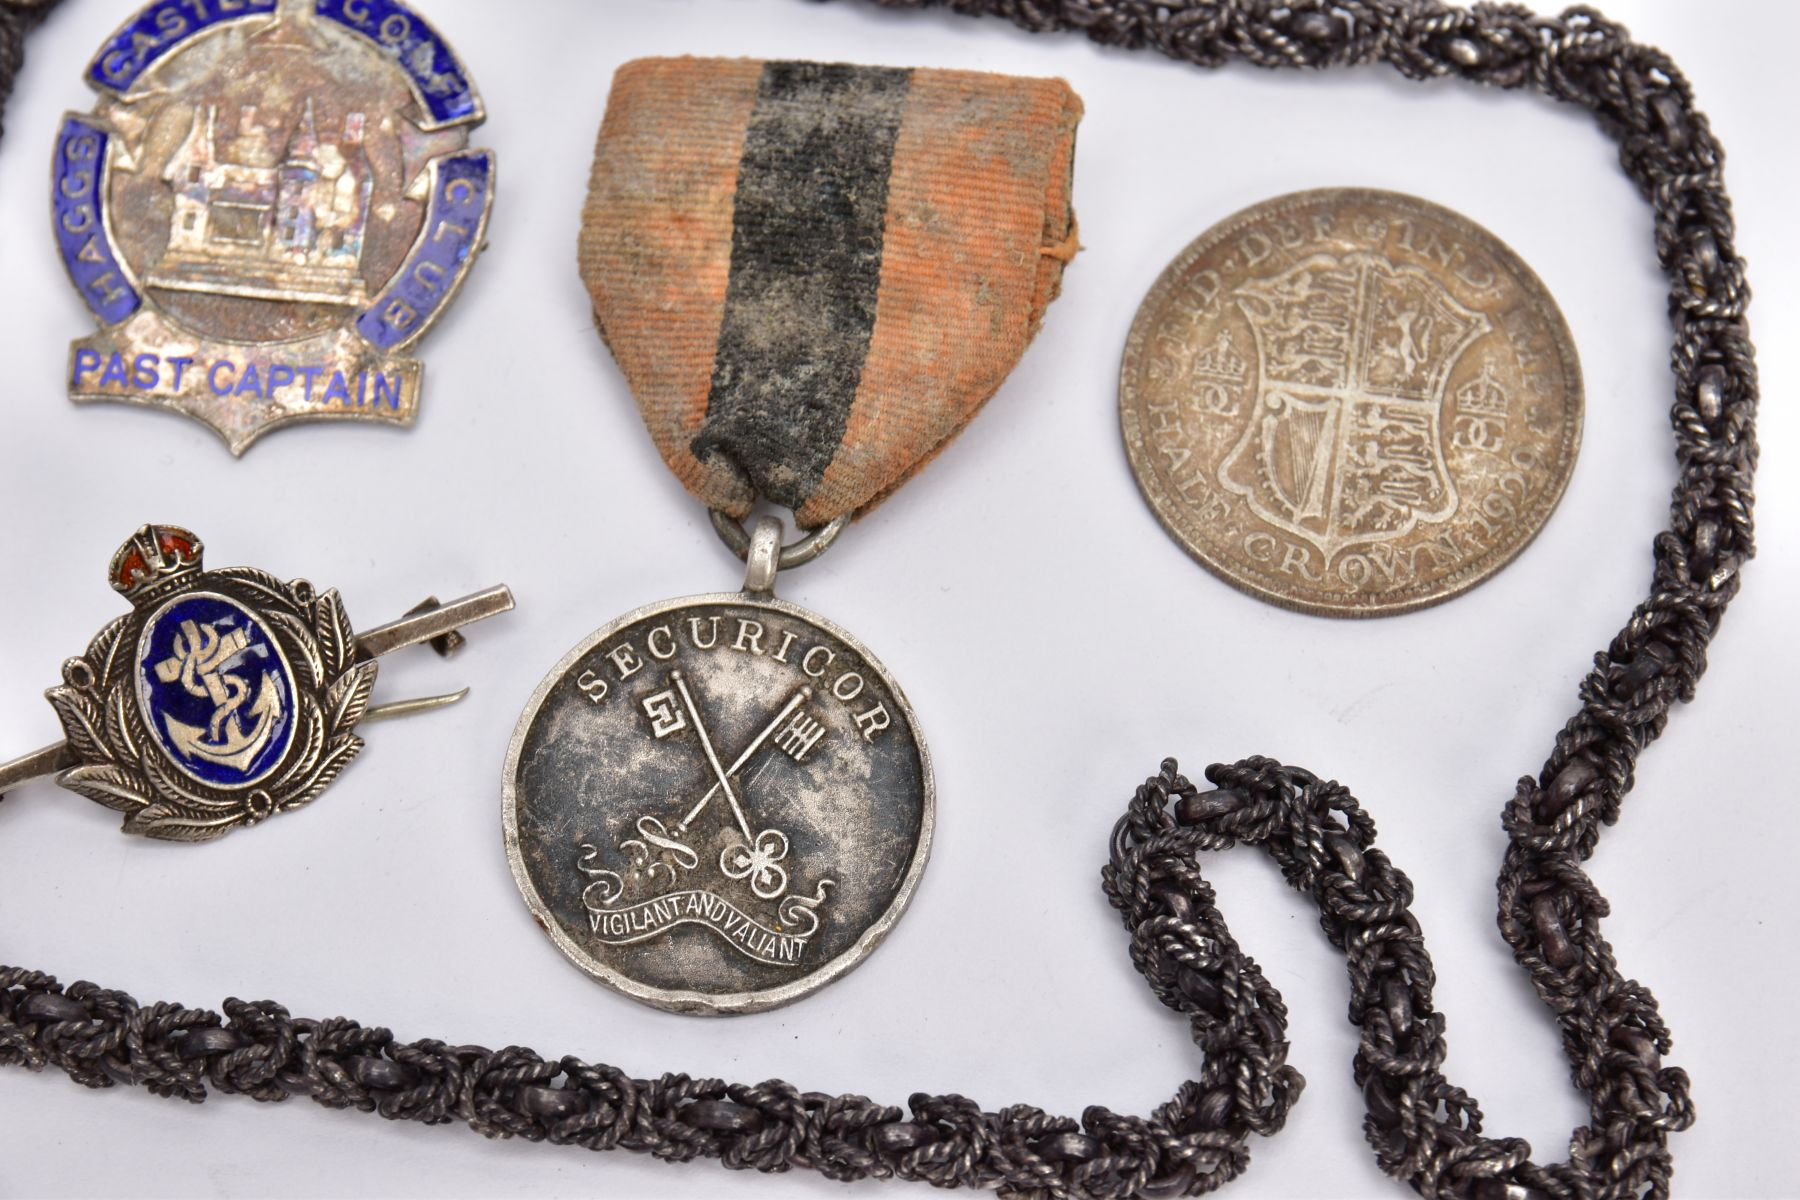 A STAMPED MEXICO 925 NECK CHAIN, tarnished, Haggs Castle Gold Club past captain badge (hallmarked) - Image 3 of 4